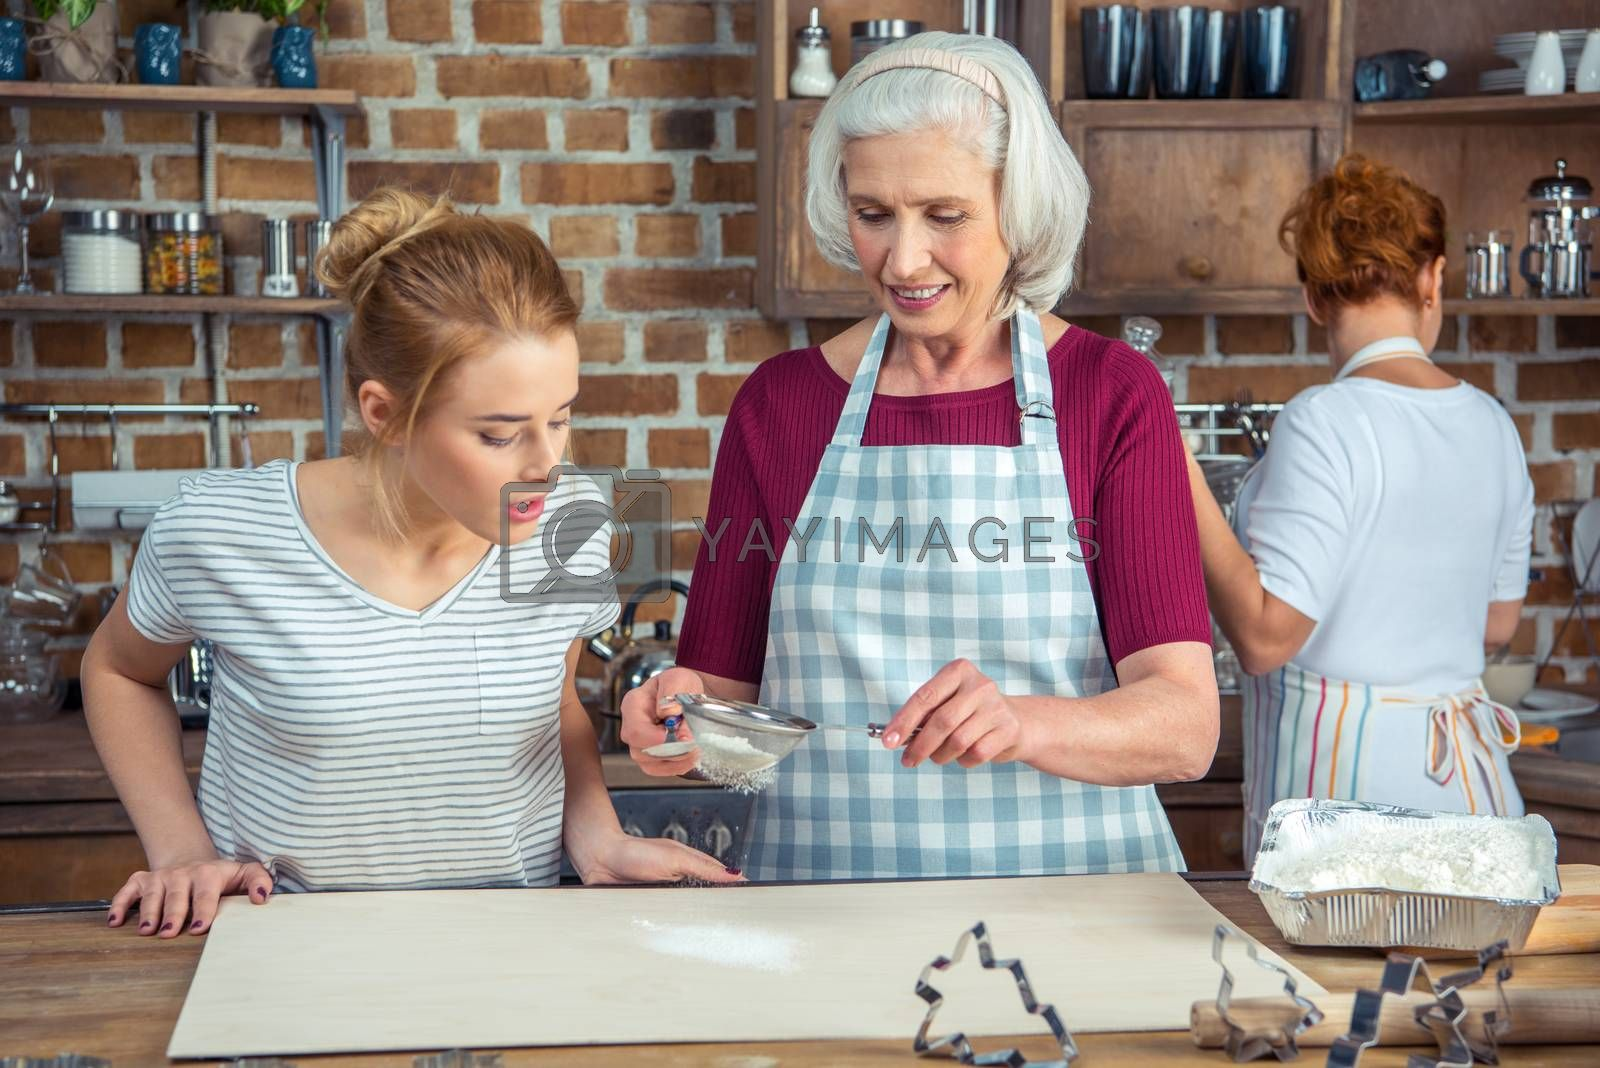 Grandmother and granddaughter sifting flour for cookies in kitchen